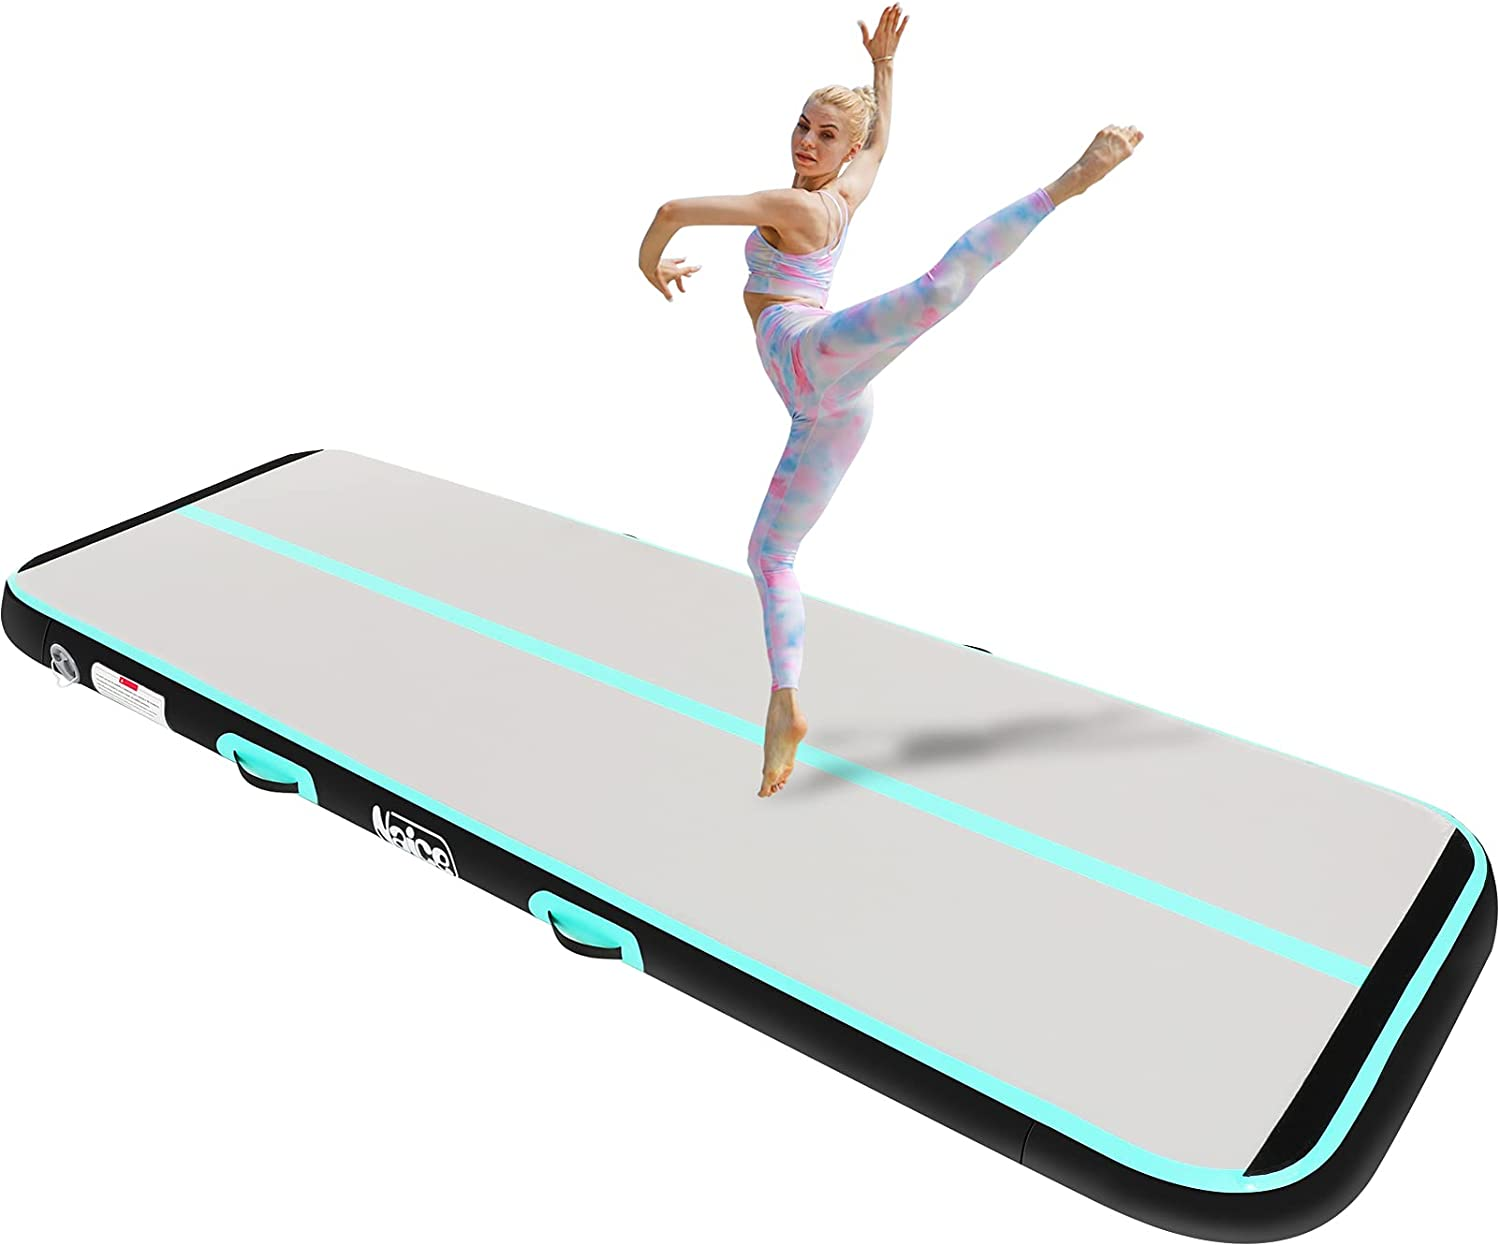 Naice Today's only Inflatable Air Gymnastics Training Mat Finally popular brand Tumbling 10ft